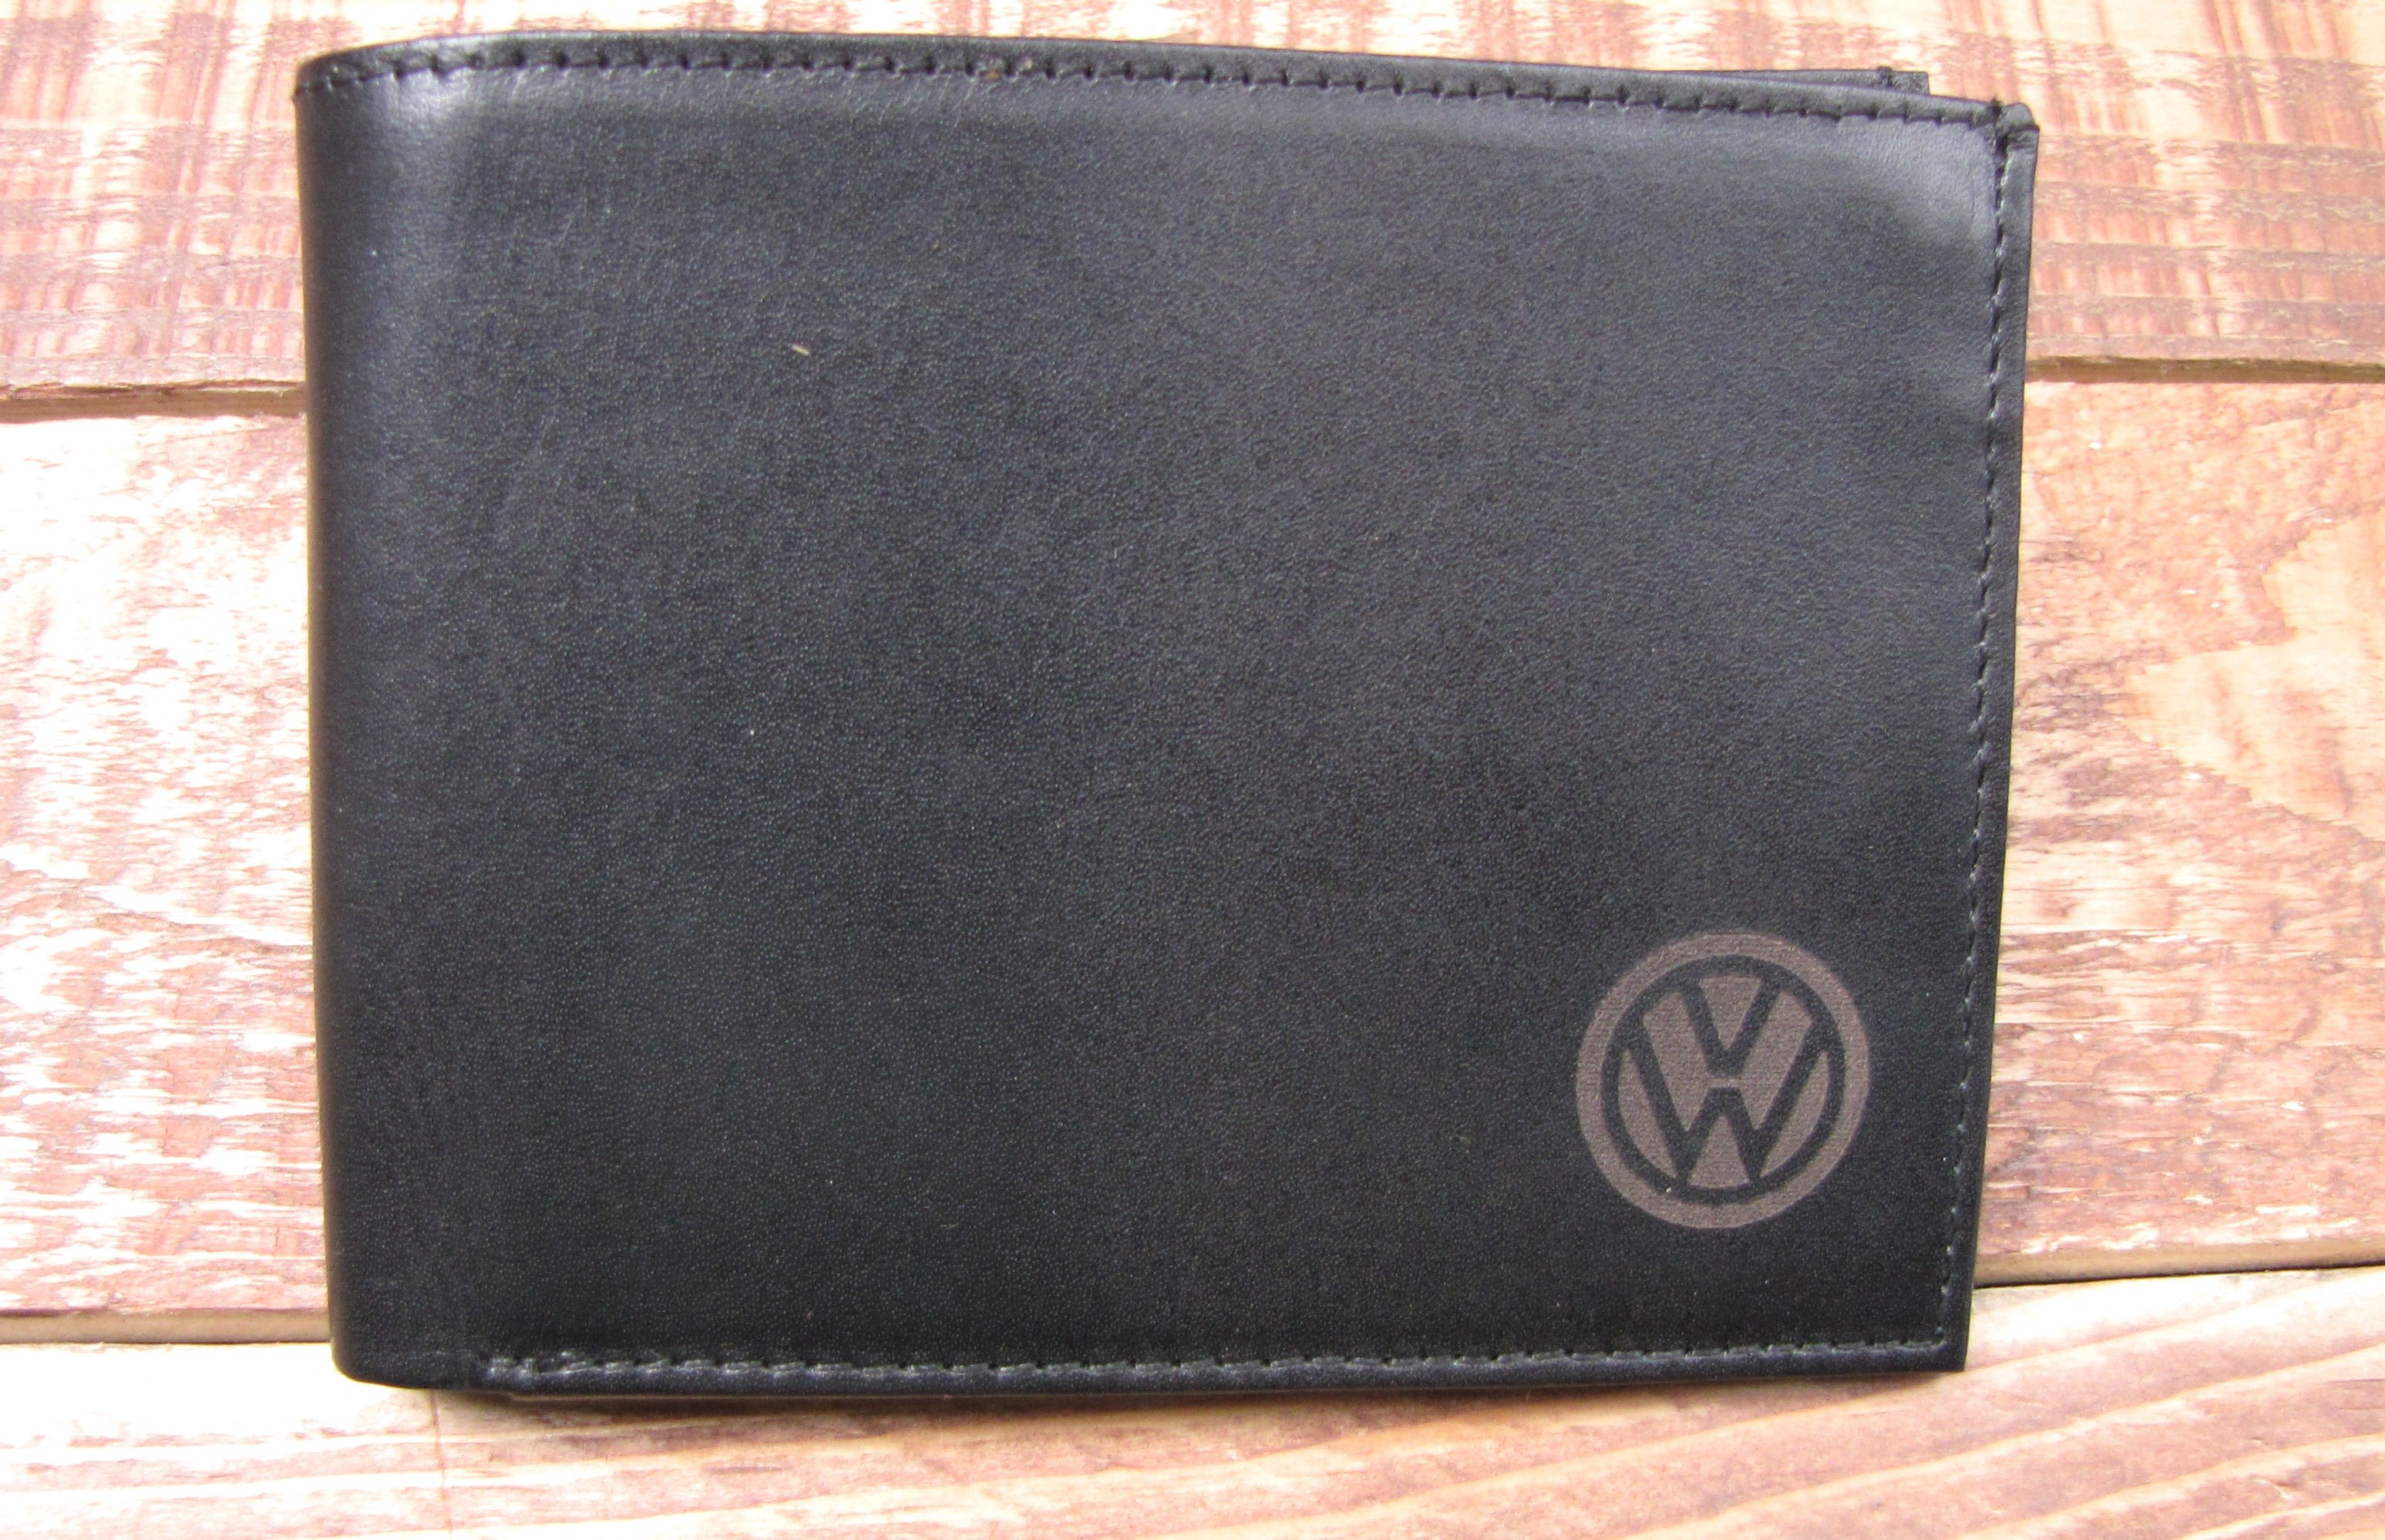 Black Leather full Wallet with VW on the front small